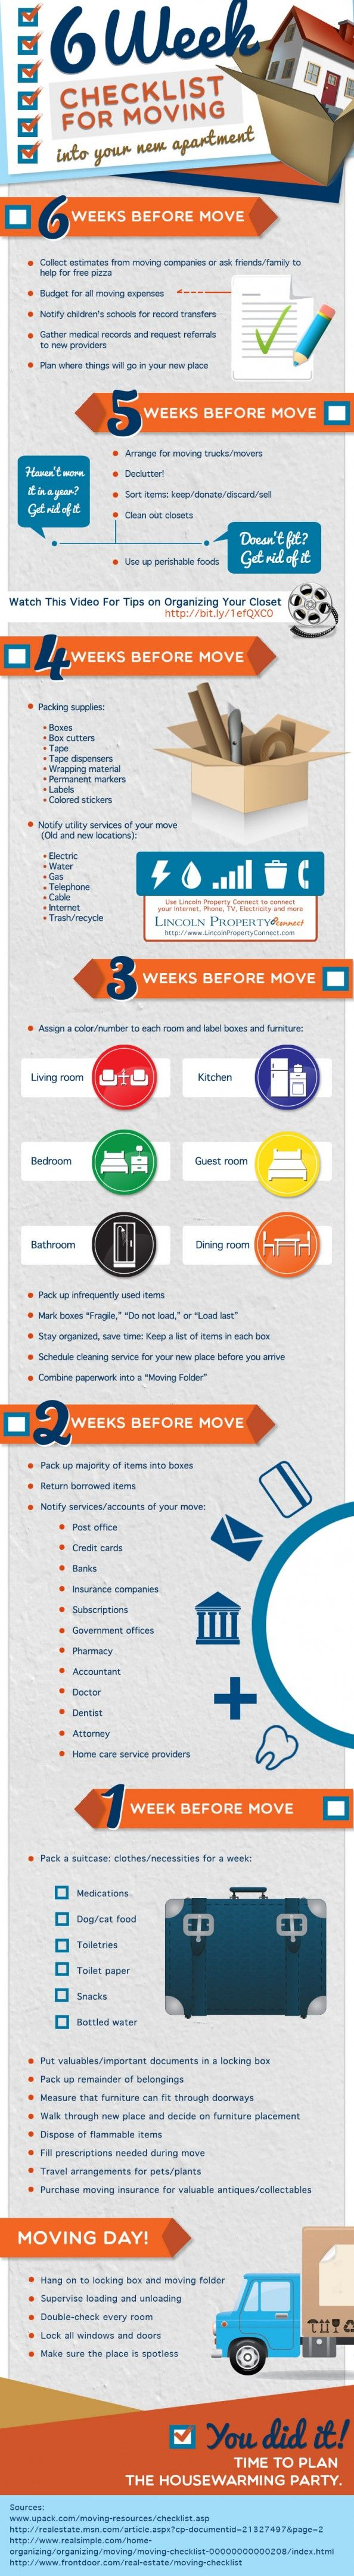 6 Week Guidelines For Transferring Into Your New Condo | Visible.ly